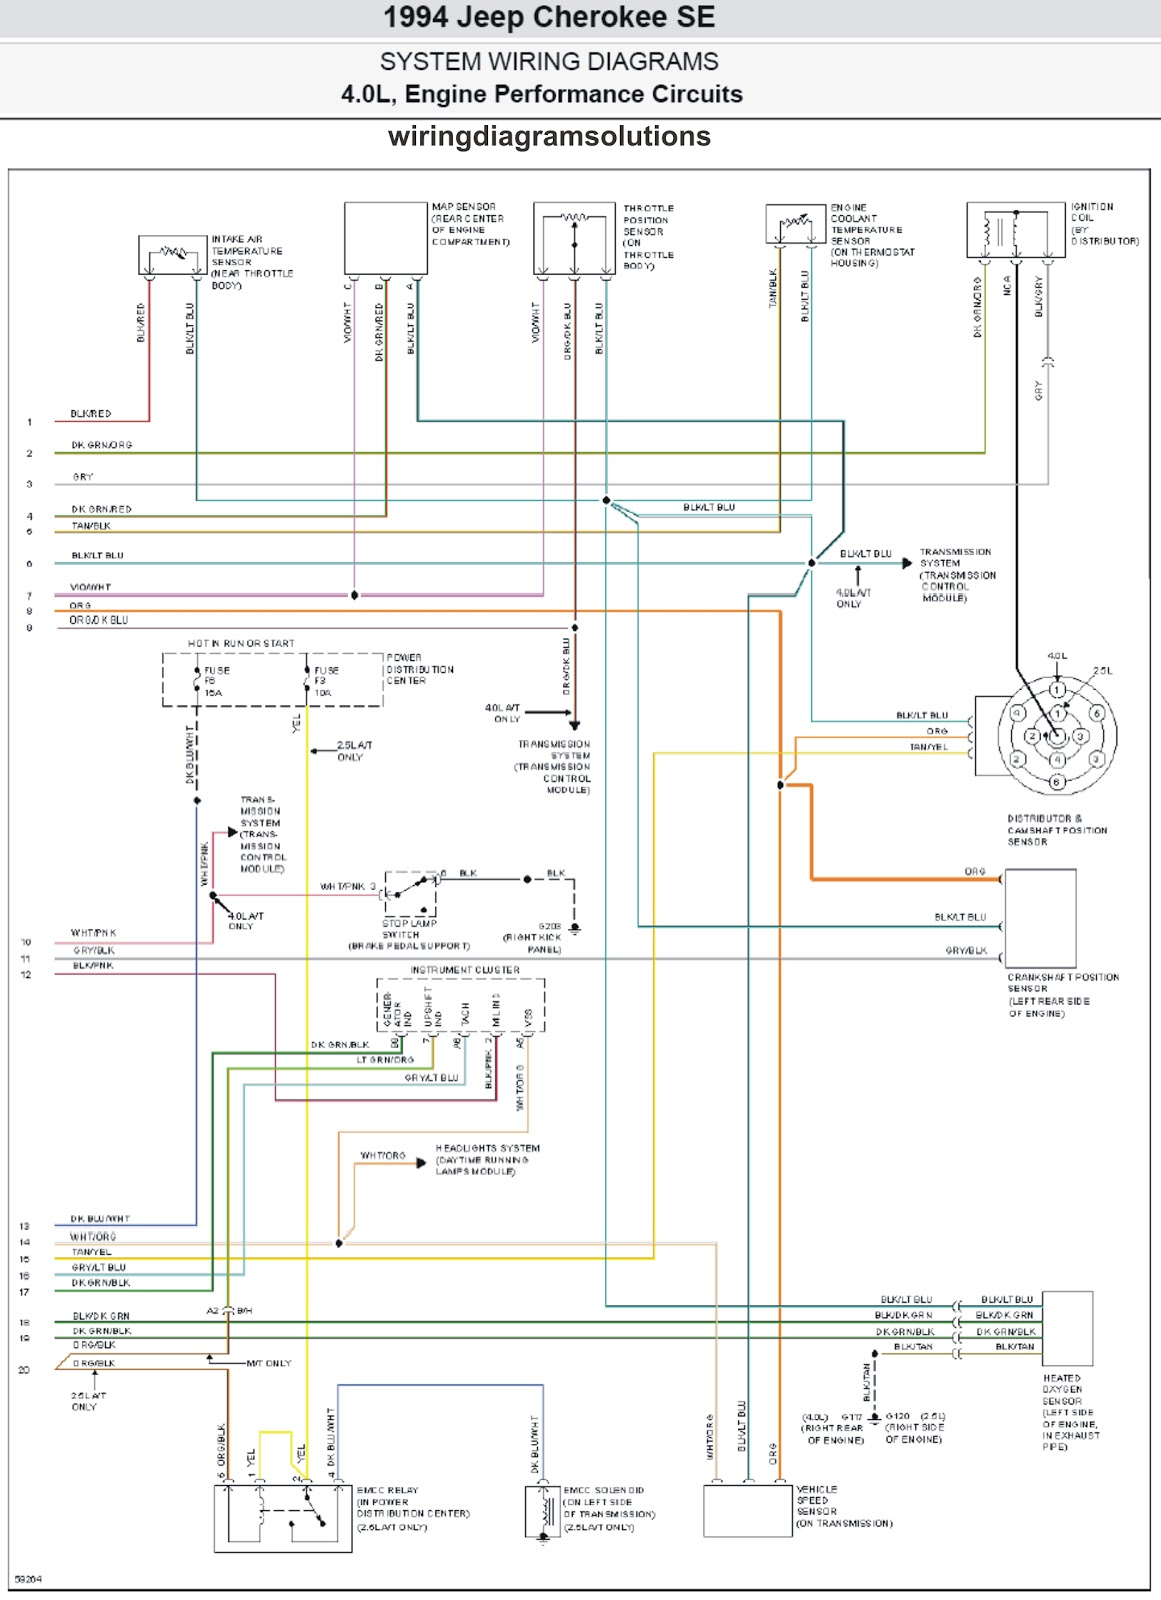 DIAGRAM] 88 Jeep Cherokee Wiring Diagram FULL Version HD Quality Wiring  Diagram - SUNSUSPENSION.MAI-LIE.FRsunsuspension.mai-lie.fr